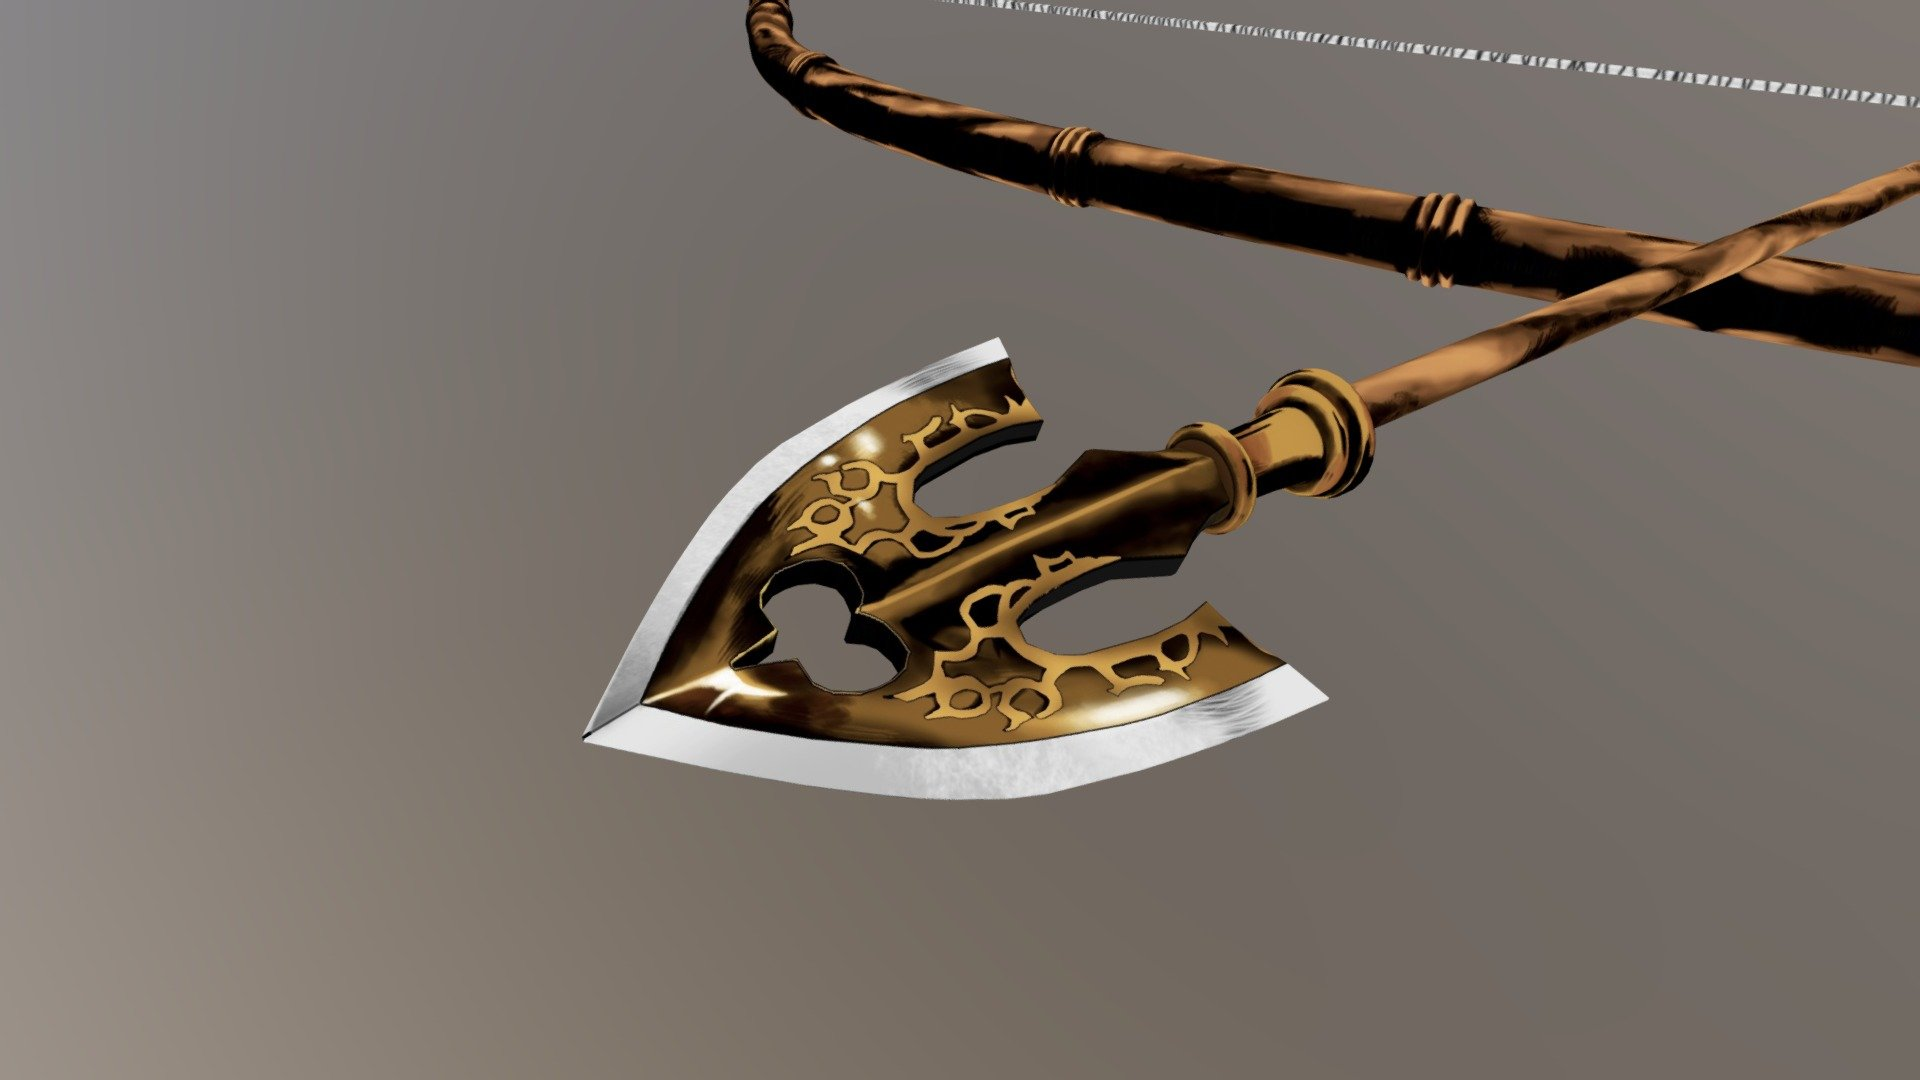 Jojo Bow And Arrow 3d Model By Carolina Amorim Camorim 7279682 Sketchfab Feel free to post your wallpapers on this thread and/or message me about it so i can update this post. jojo bow and arrow 3d model by